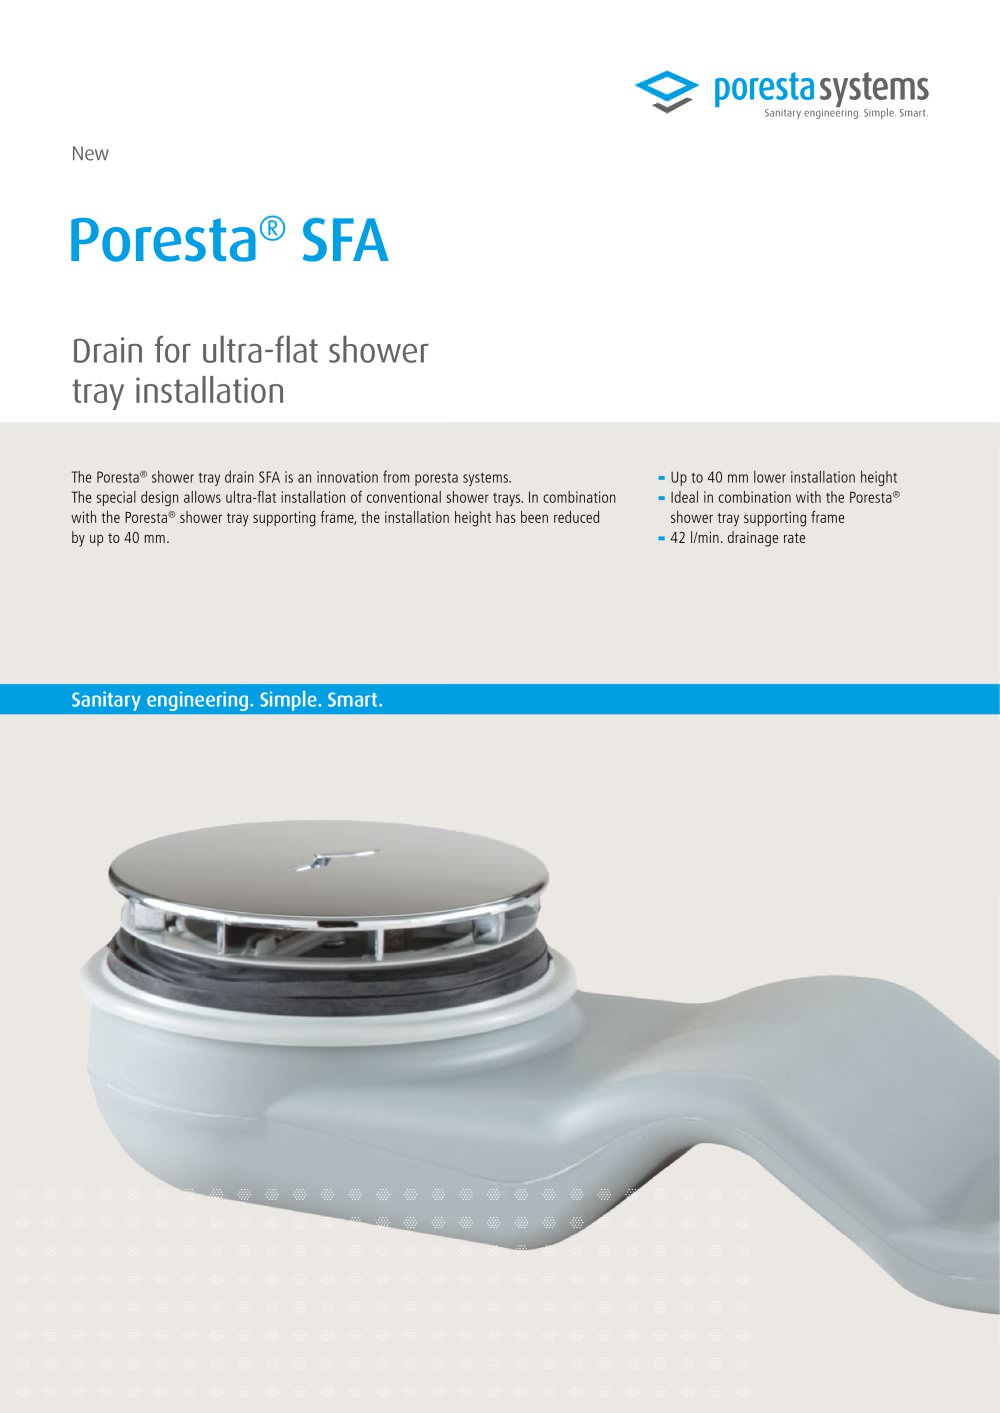 NEW Poresta® SFA Drain for ultra-flat shower tray installation ...